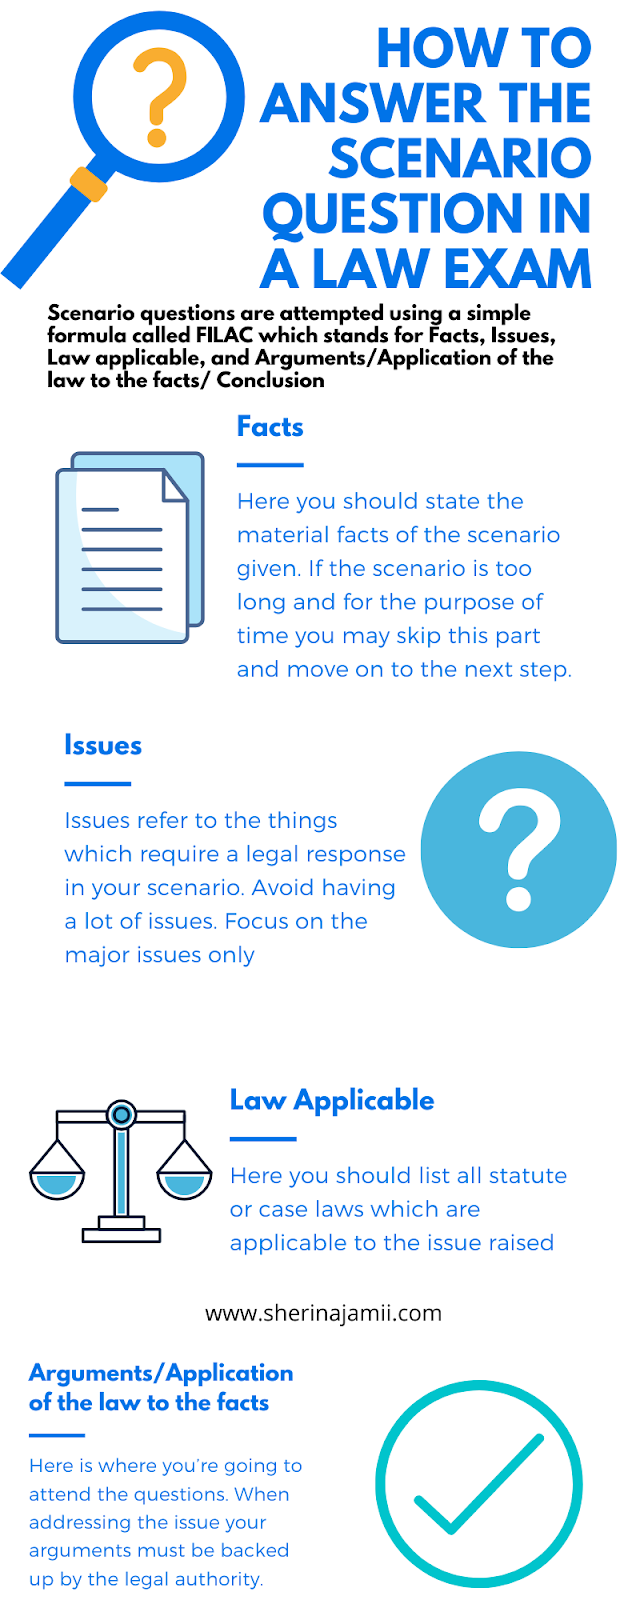 How to answer scenario questions in law exams/bar exams